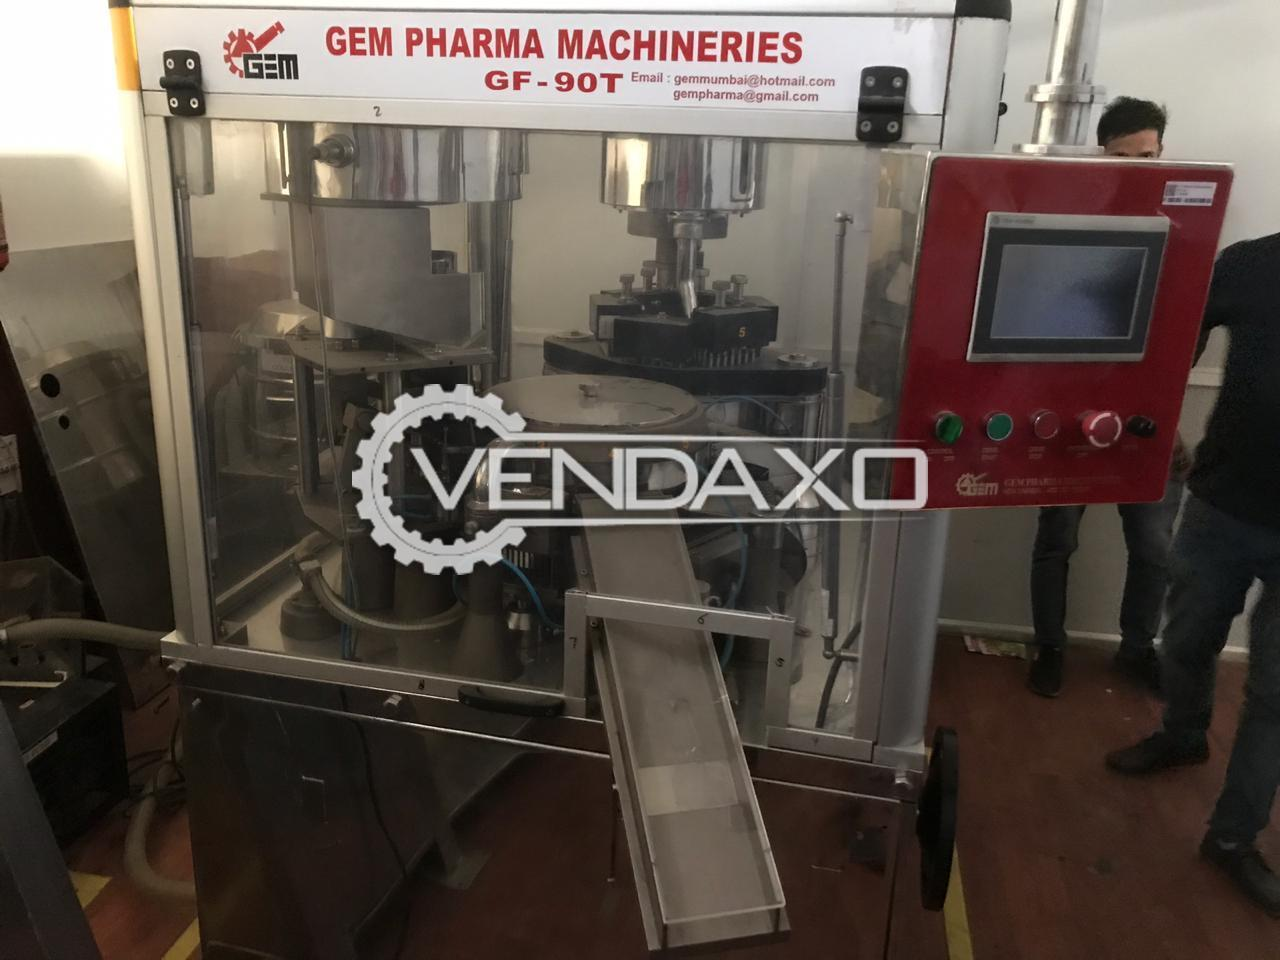 GEM GF 90T Pharma Capsule Filling Machine - 1500 Capsule / Minute